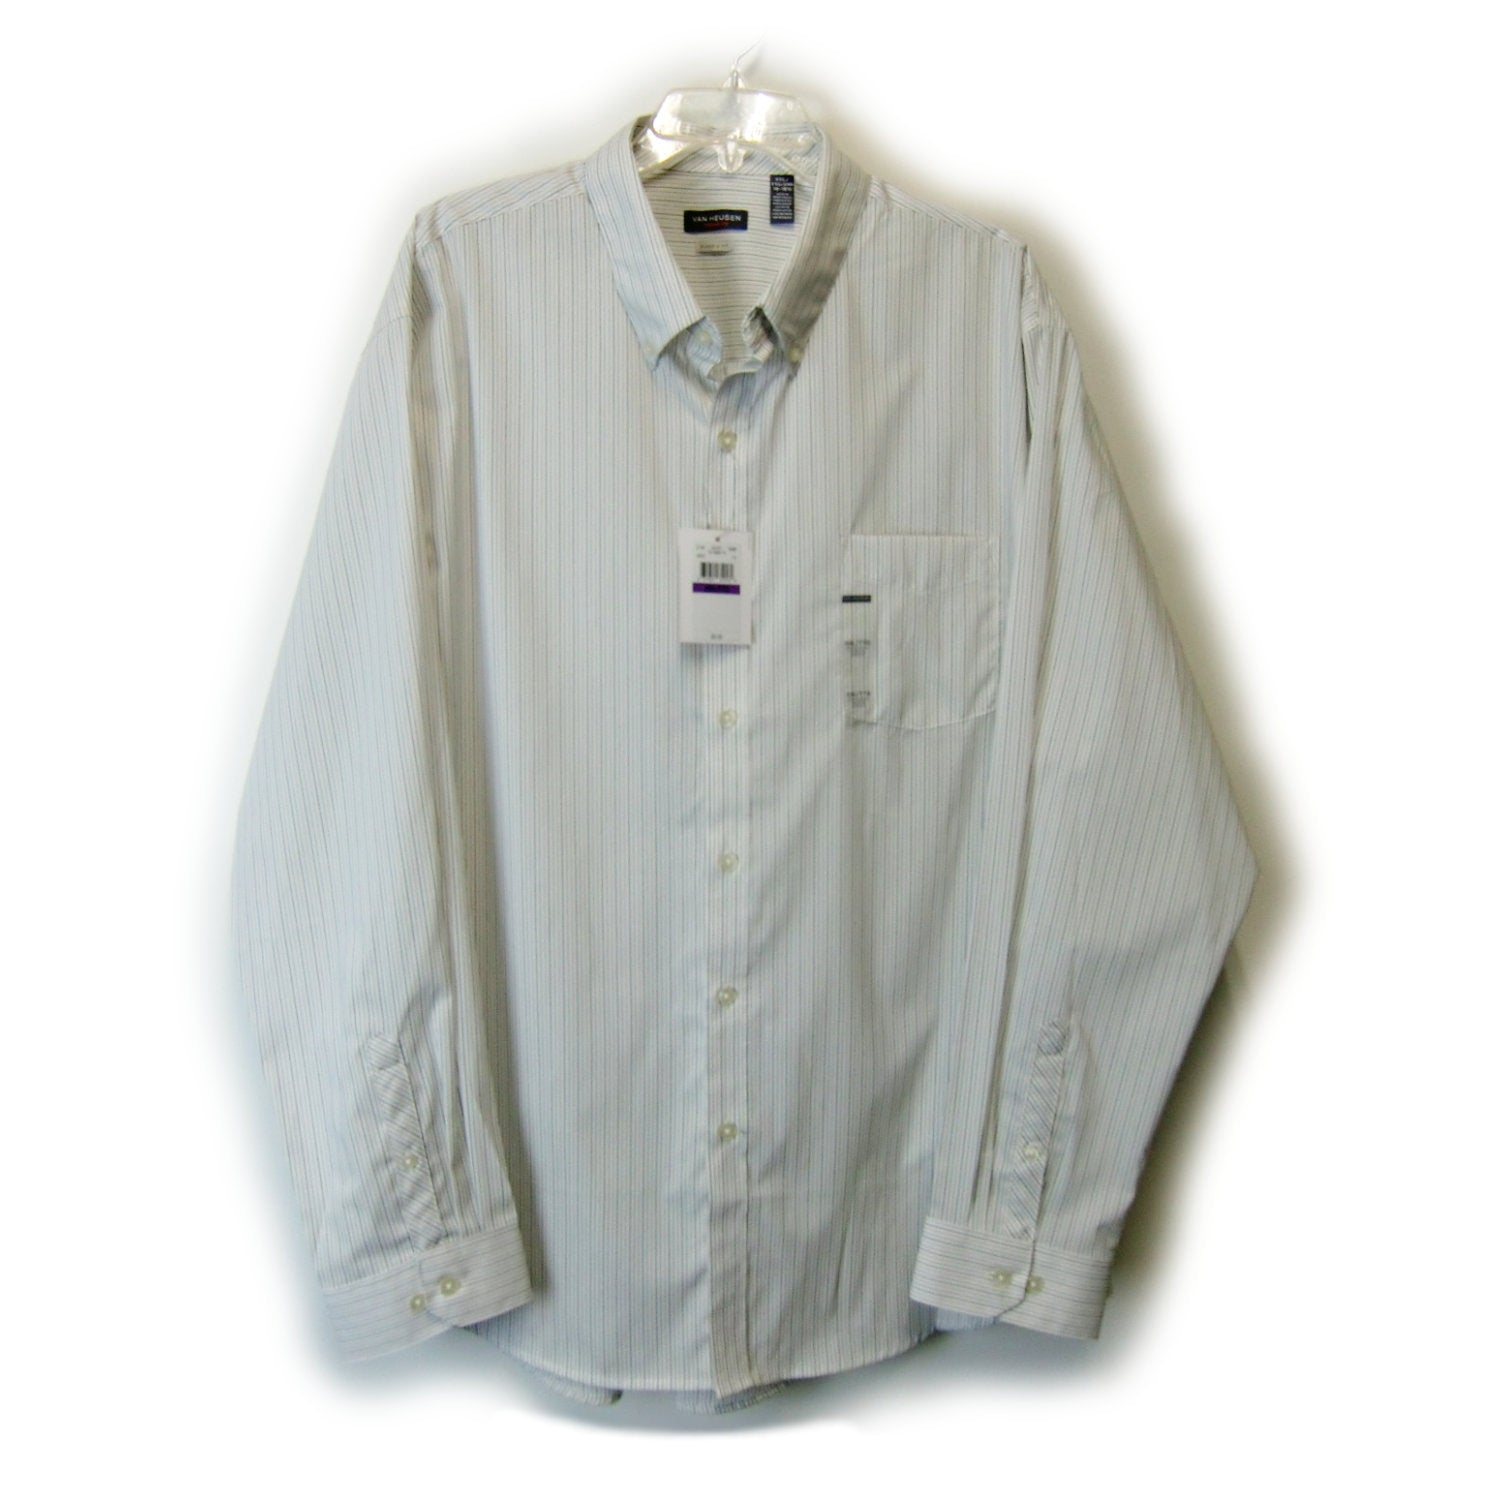 new Van Heusen classic fit man's white pinstripe shirt